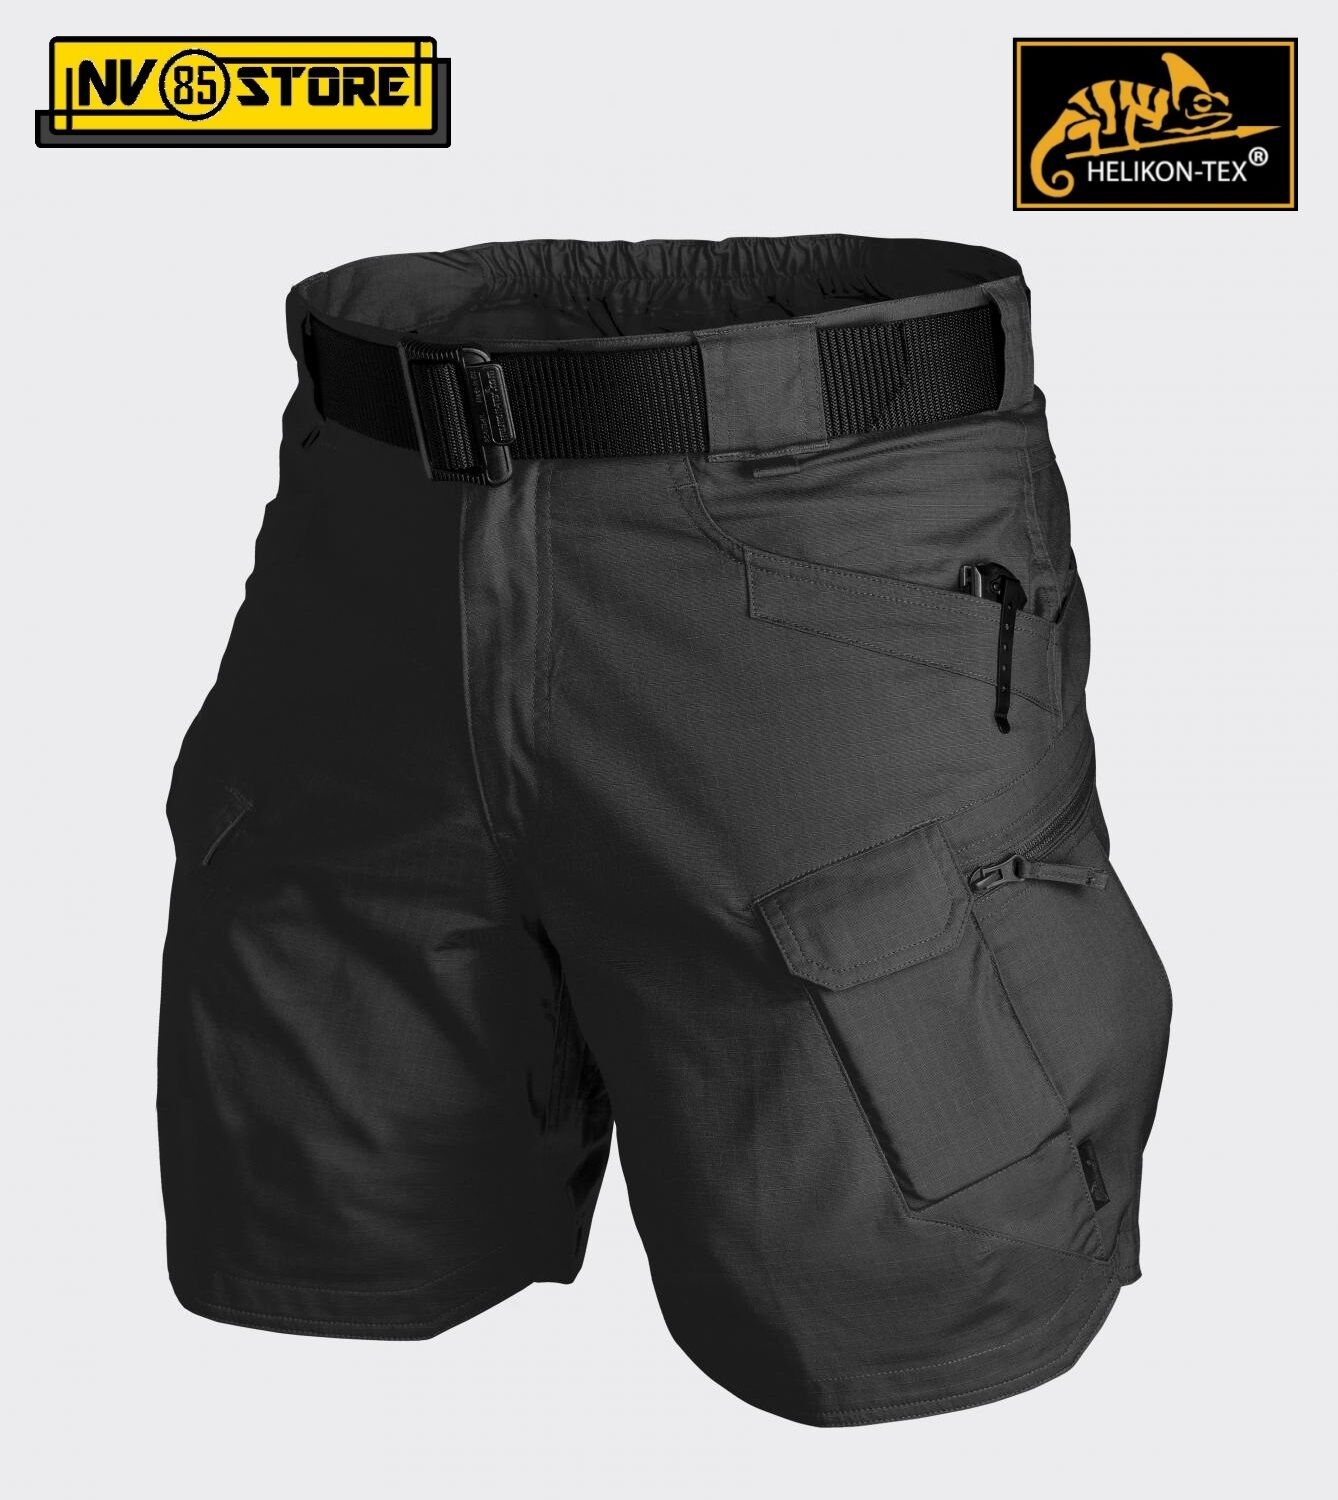 Bermuda HELIKON-TEX HELIKON-TEX HELIKON-TEX UTS Shorts Pants Tattici Caccia Softair Militari Outdoor BK 7854ac